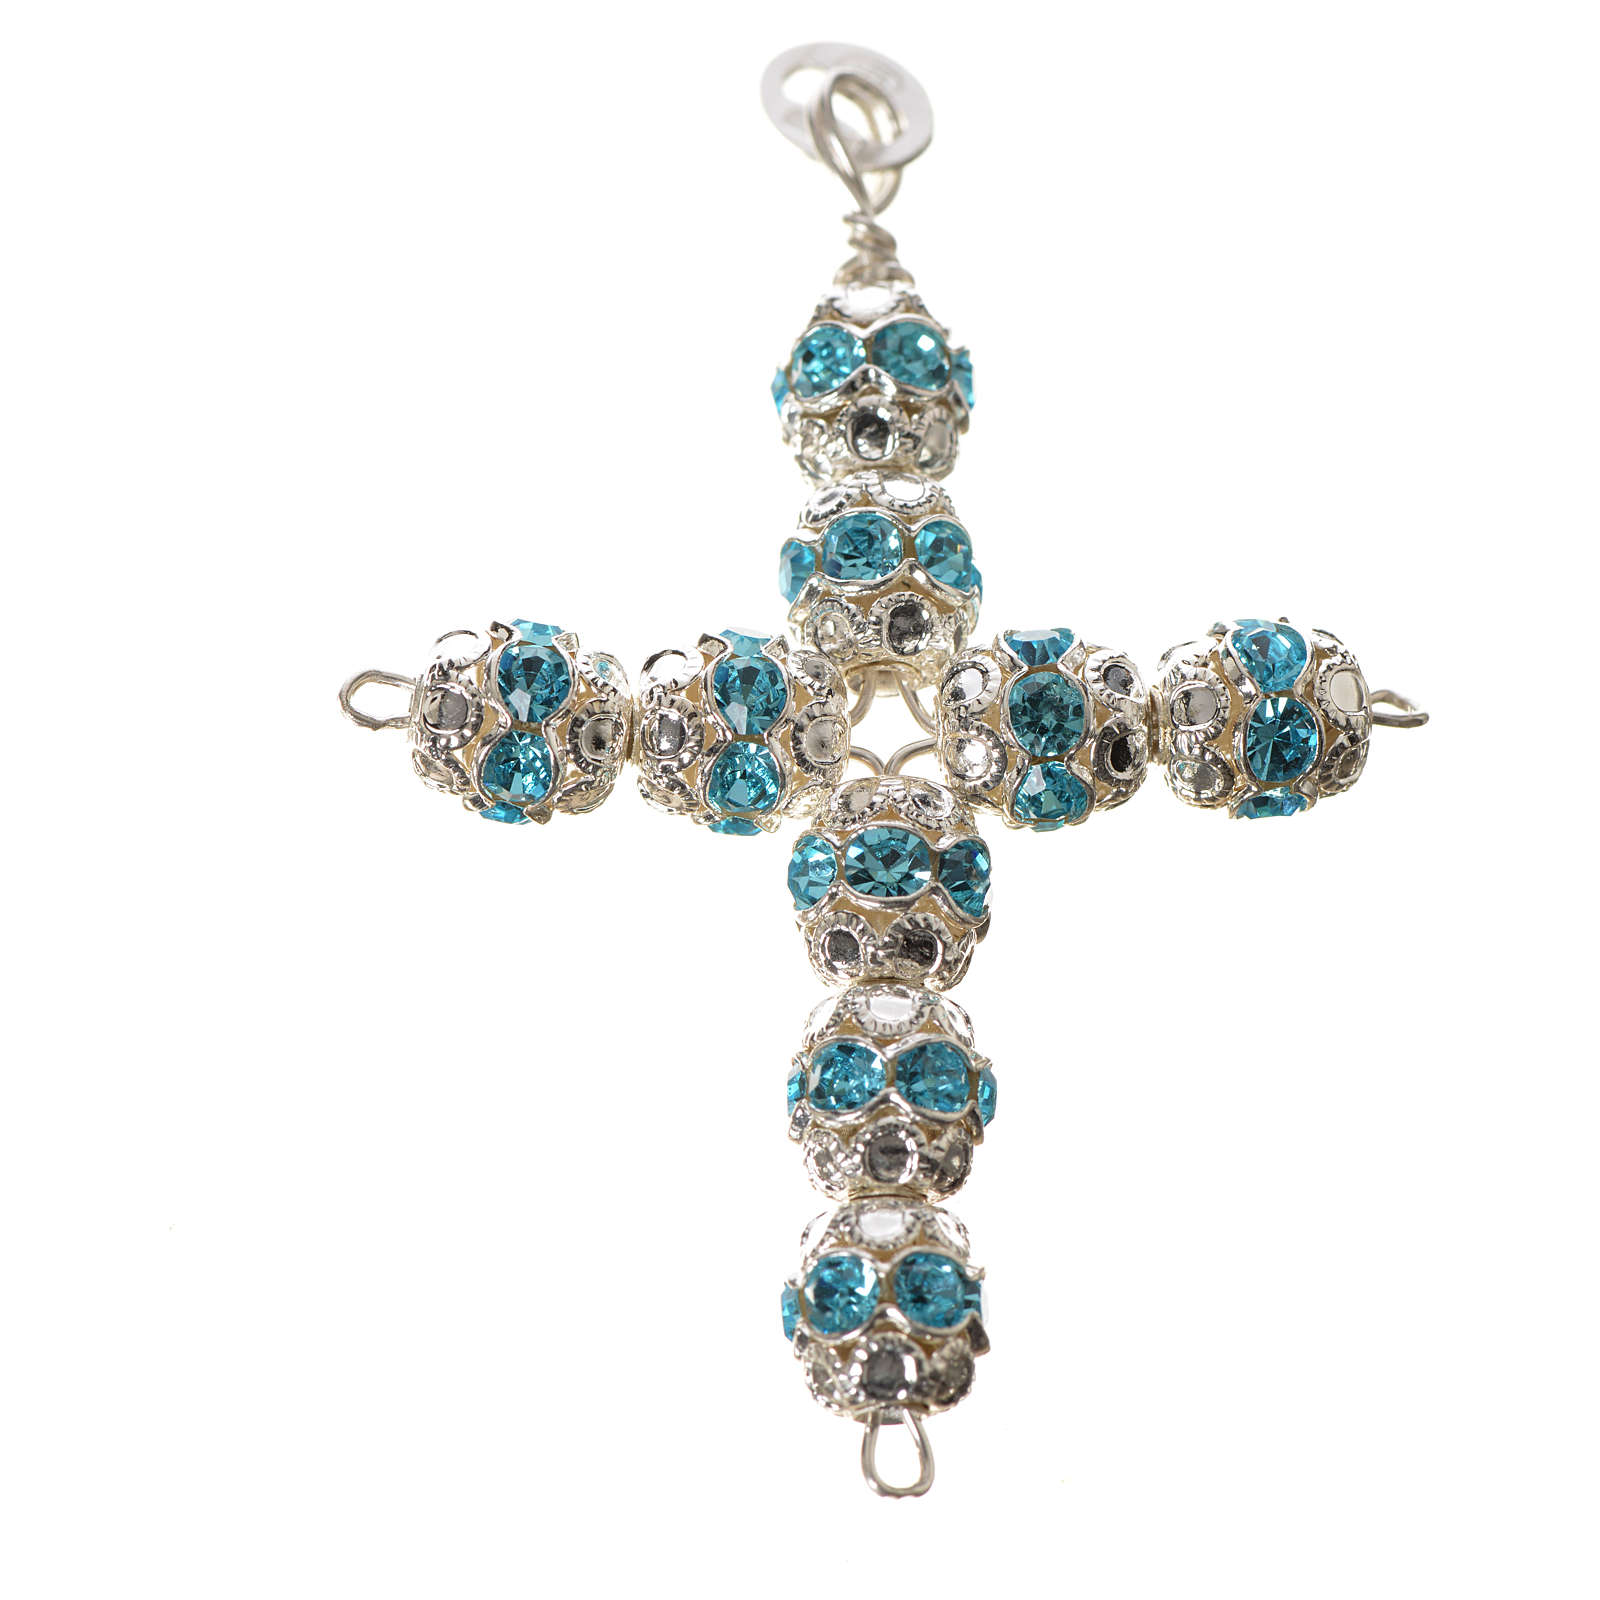 Pendant cross, sky blue Swarovski diam. 0,24in with split pins 4